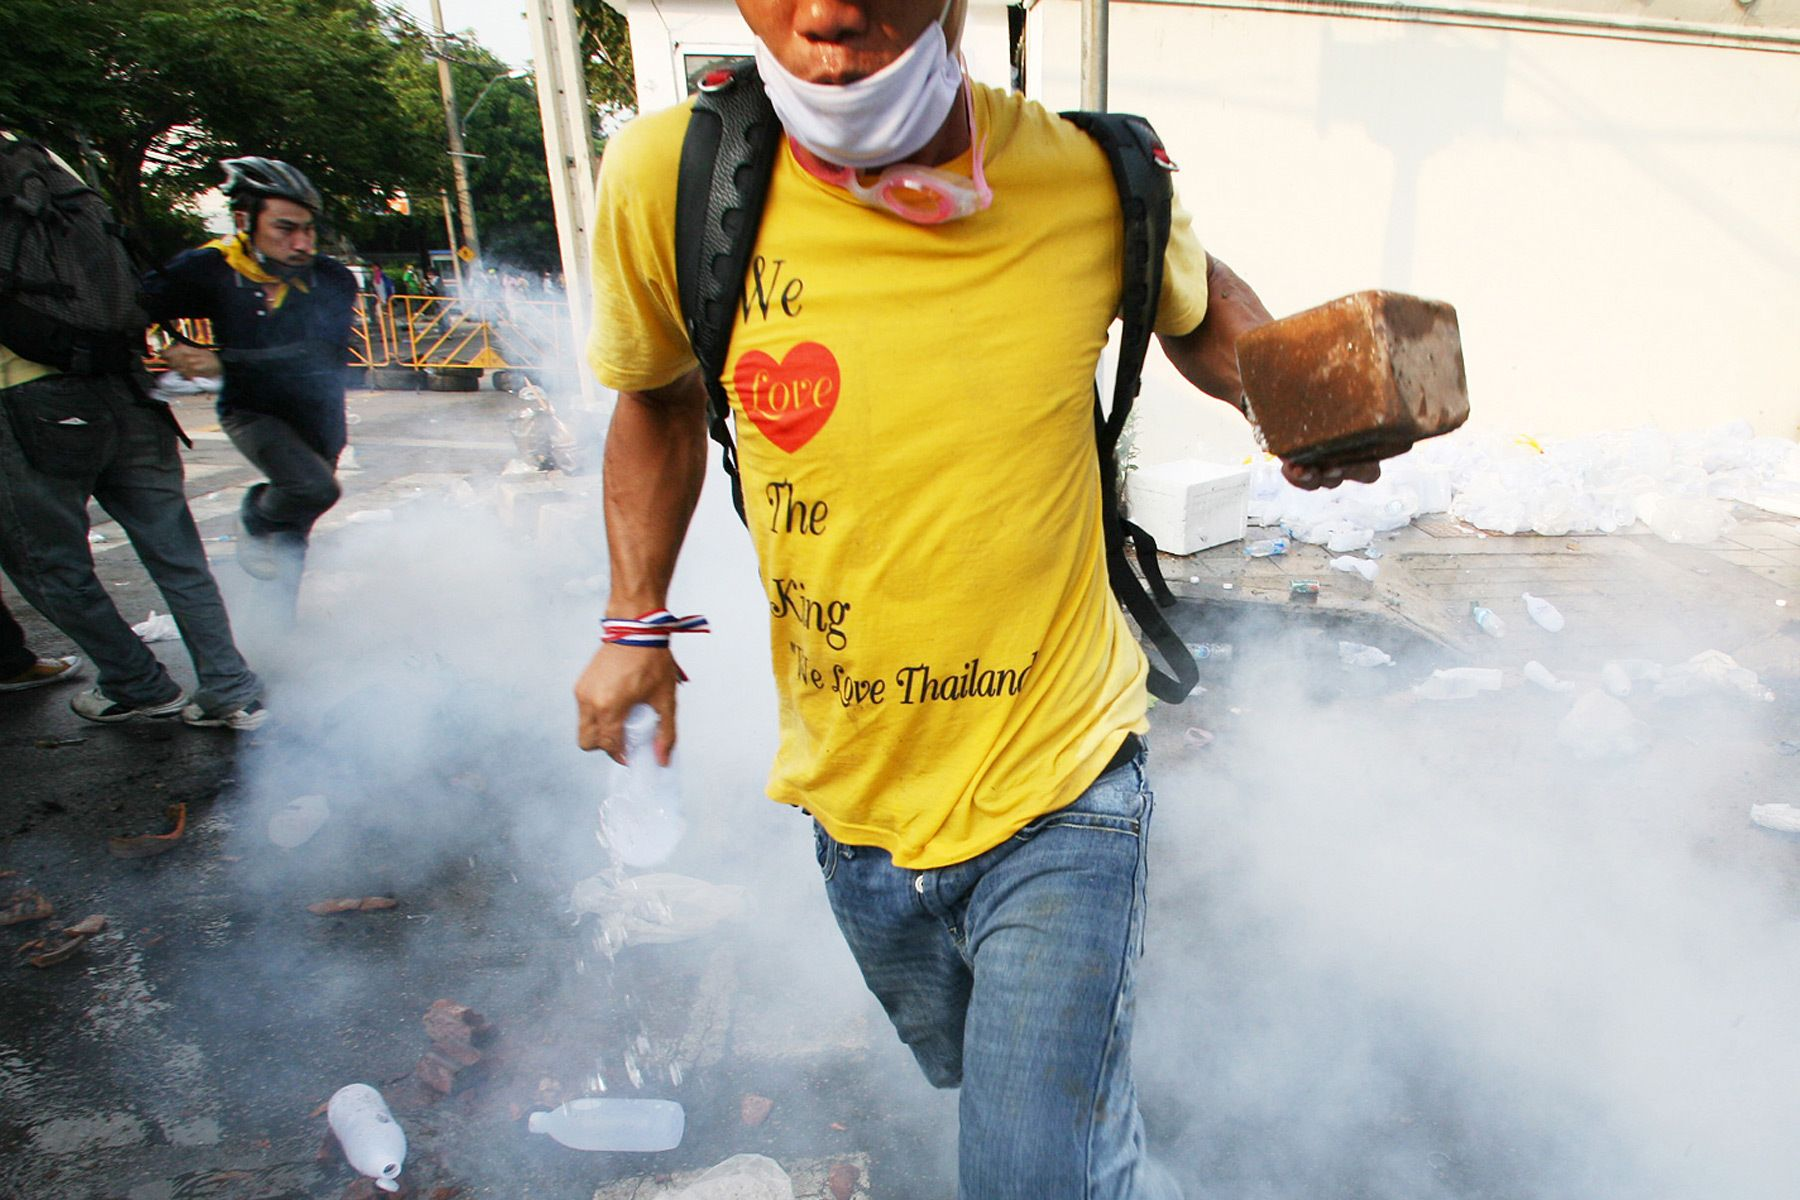 A demonstrator carrying a brick runs away in a cloud of tear gas during clashes between the People's Alliance for Democracy (PAD) and police.